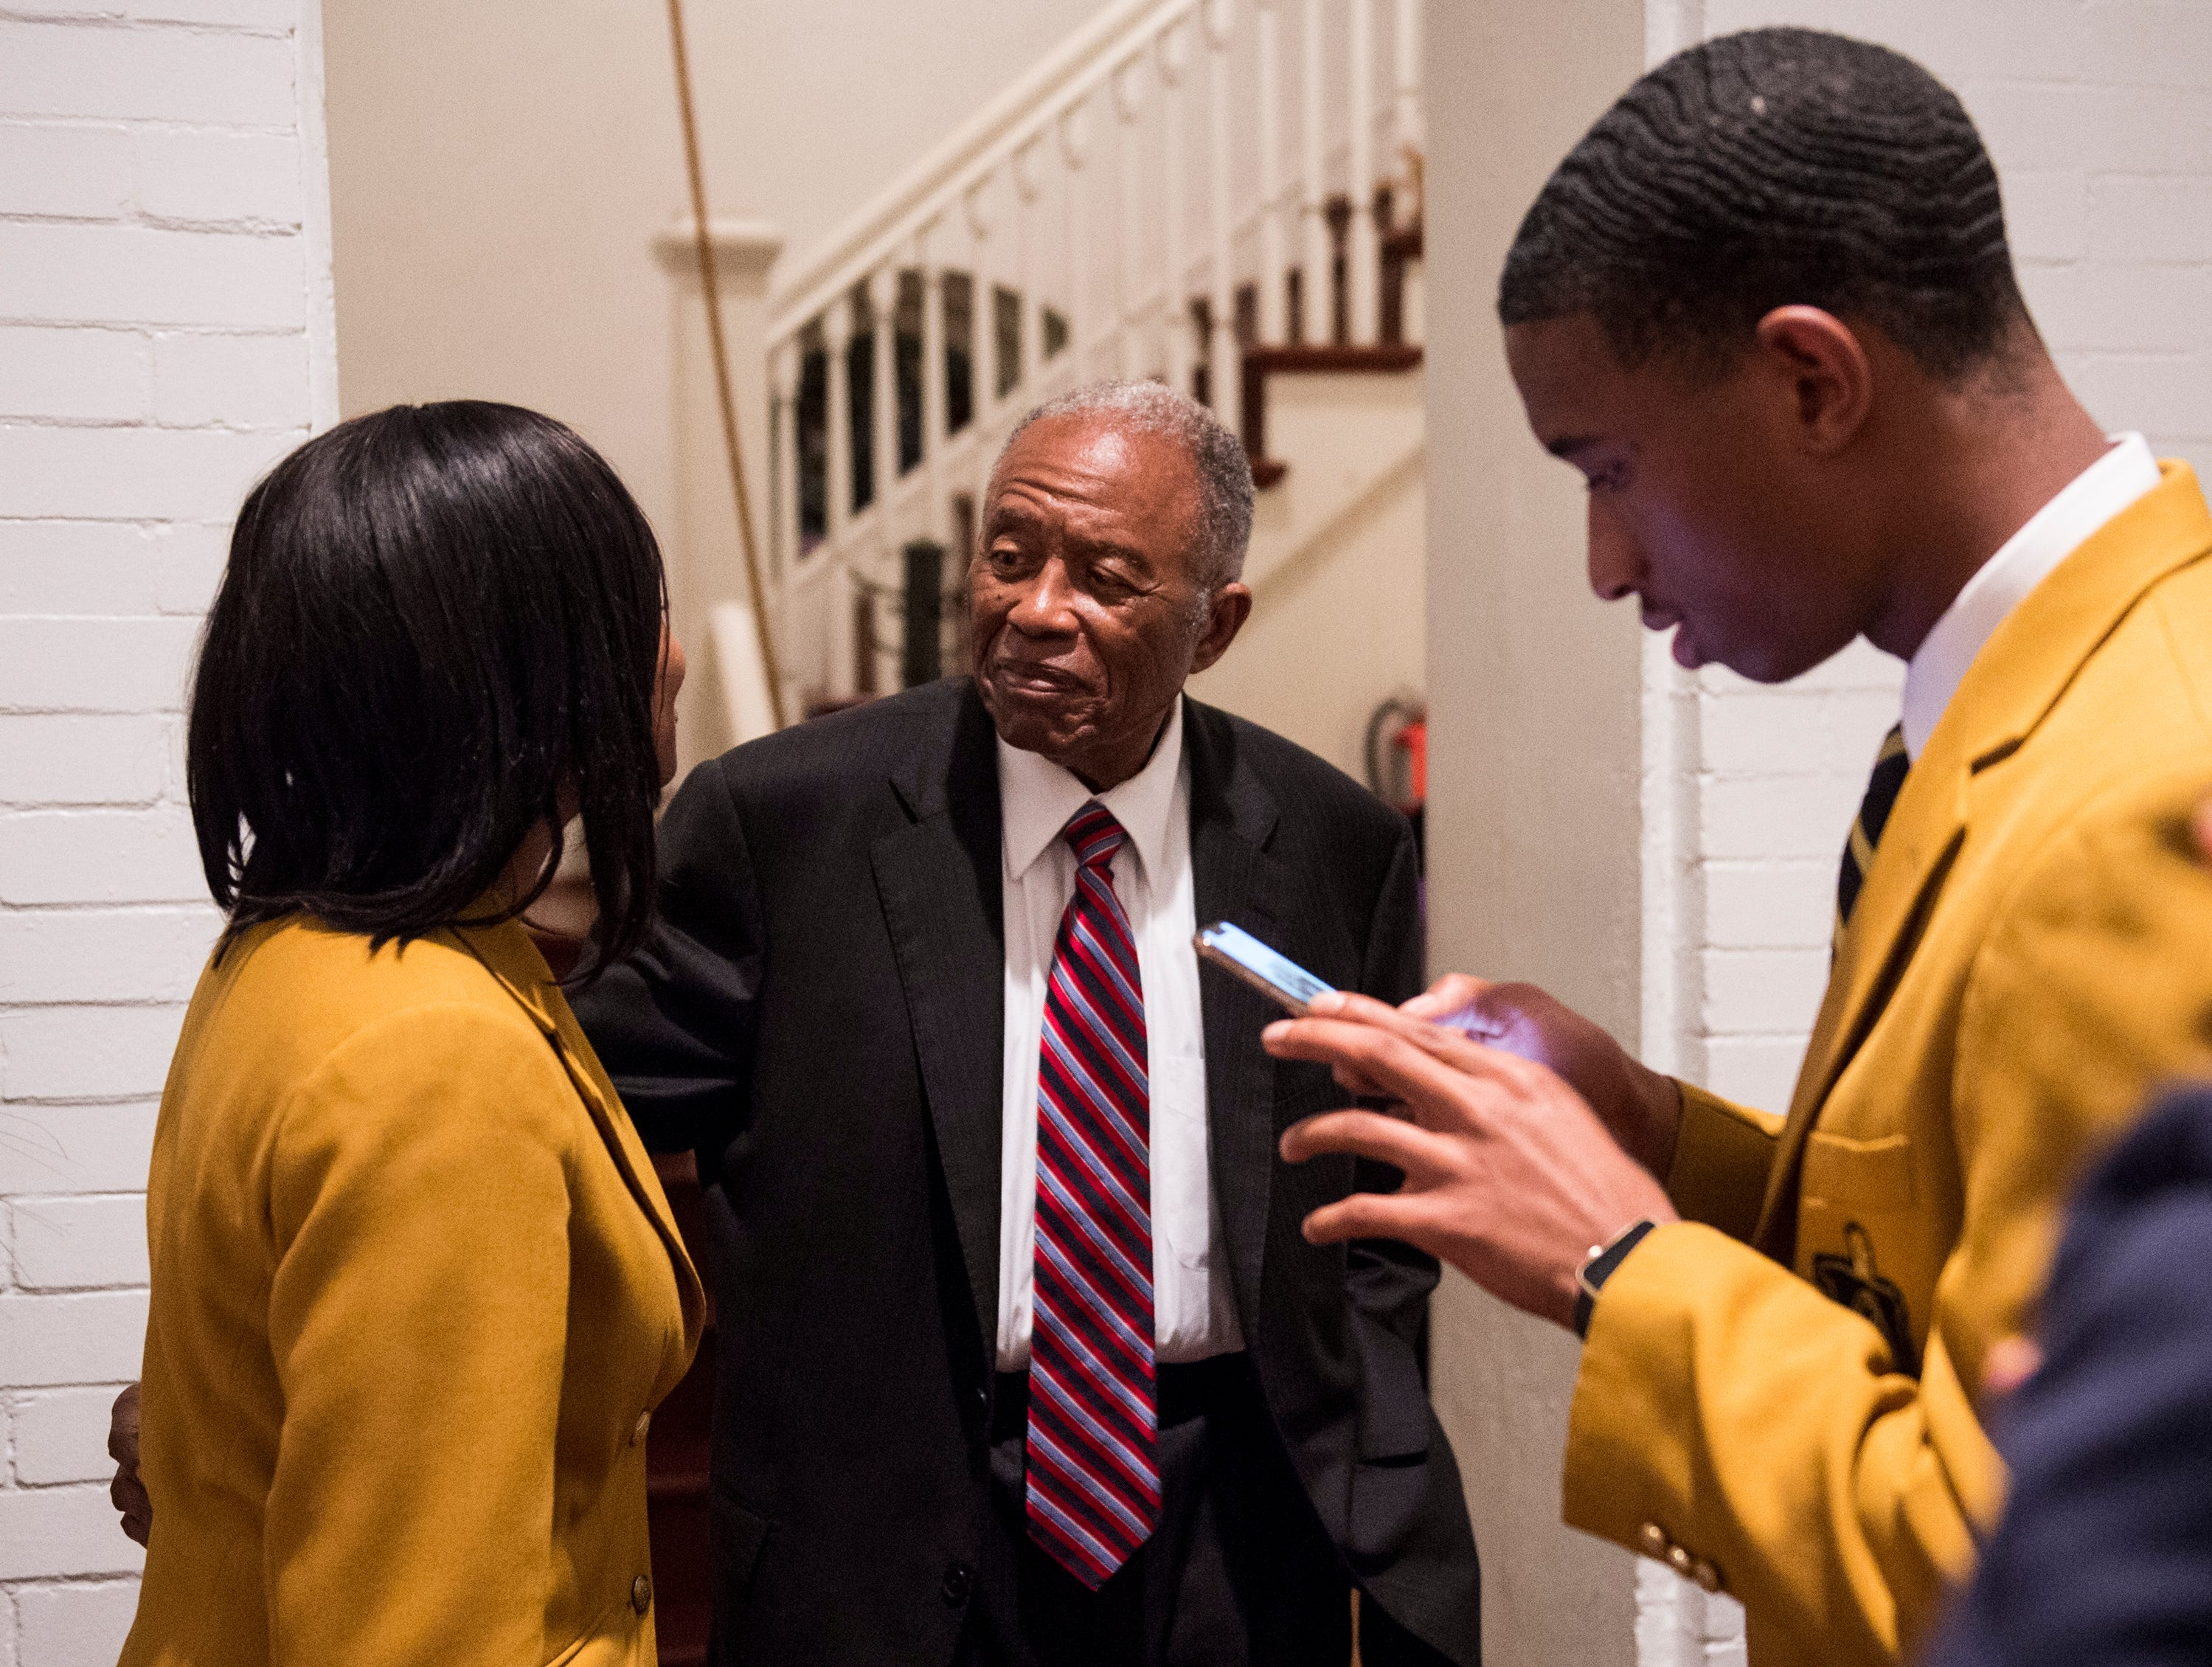 Fred Gray takes pictures with Alabama State University students during 63rd anniversary of the Montgomery bus boycott ceremony at First Baptist Church in Montgomery, Ala., on Monday, Dec. 3, 2018.